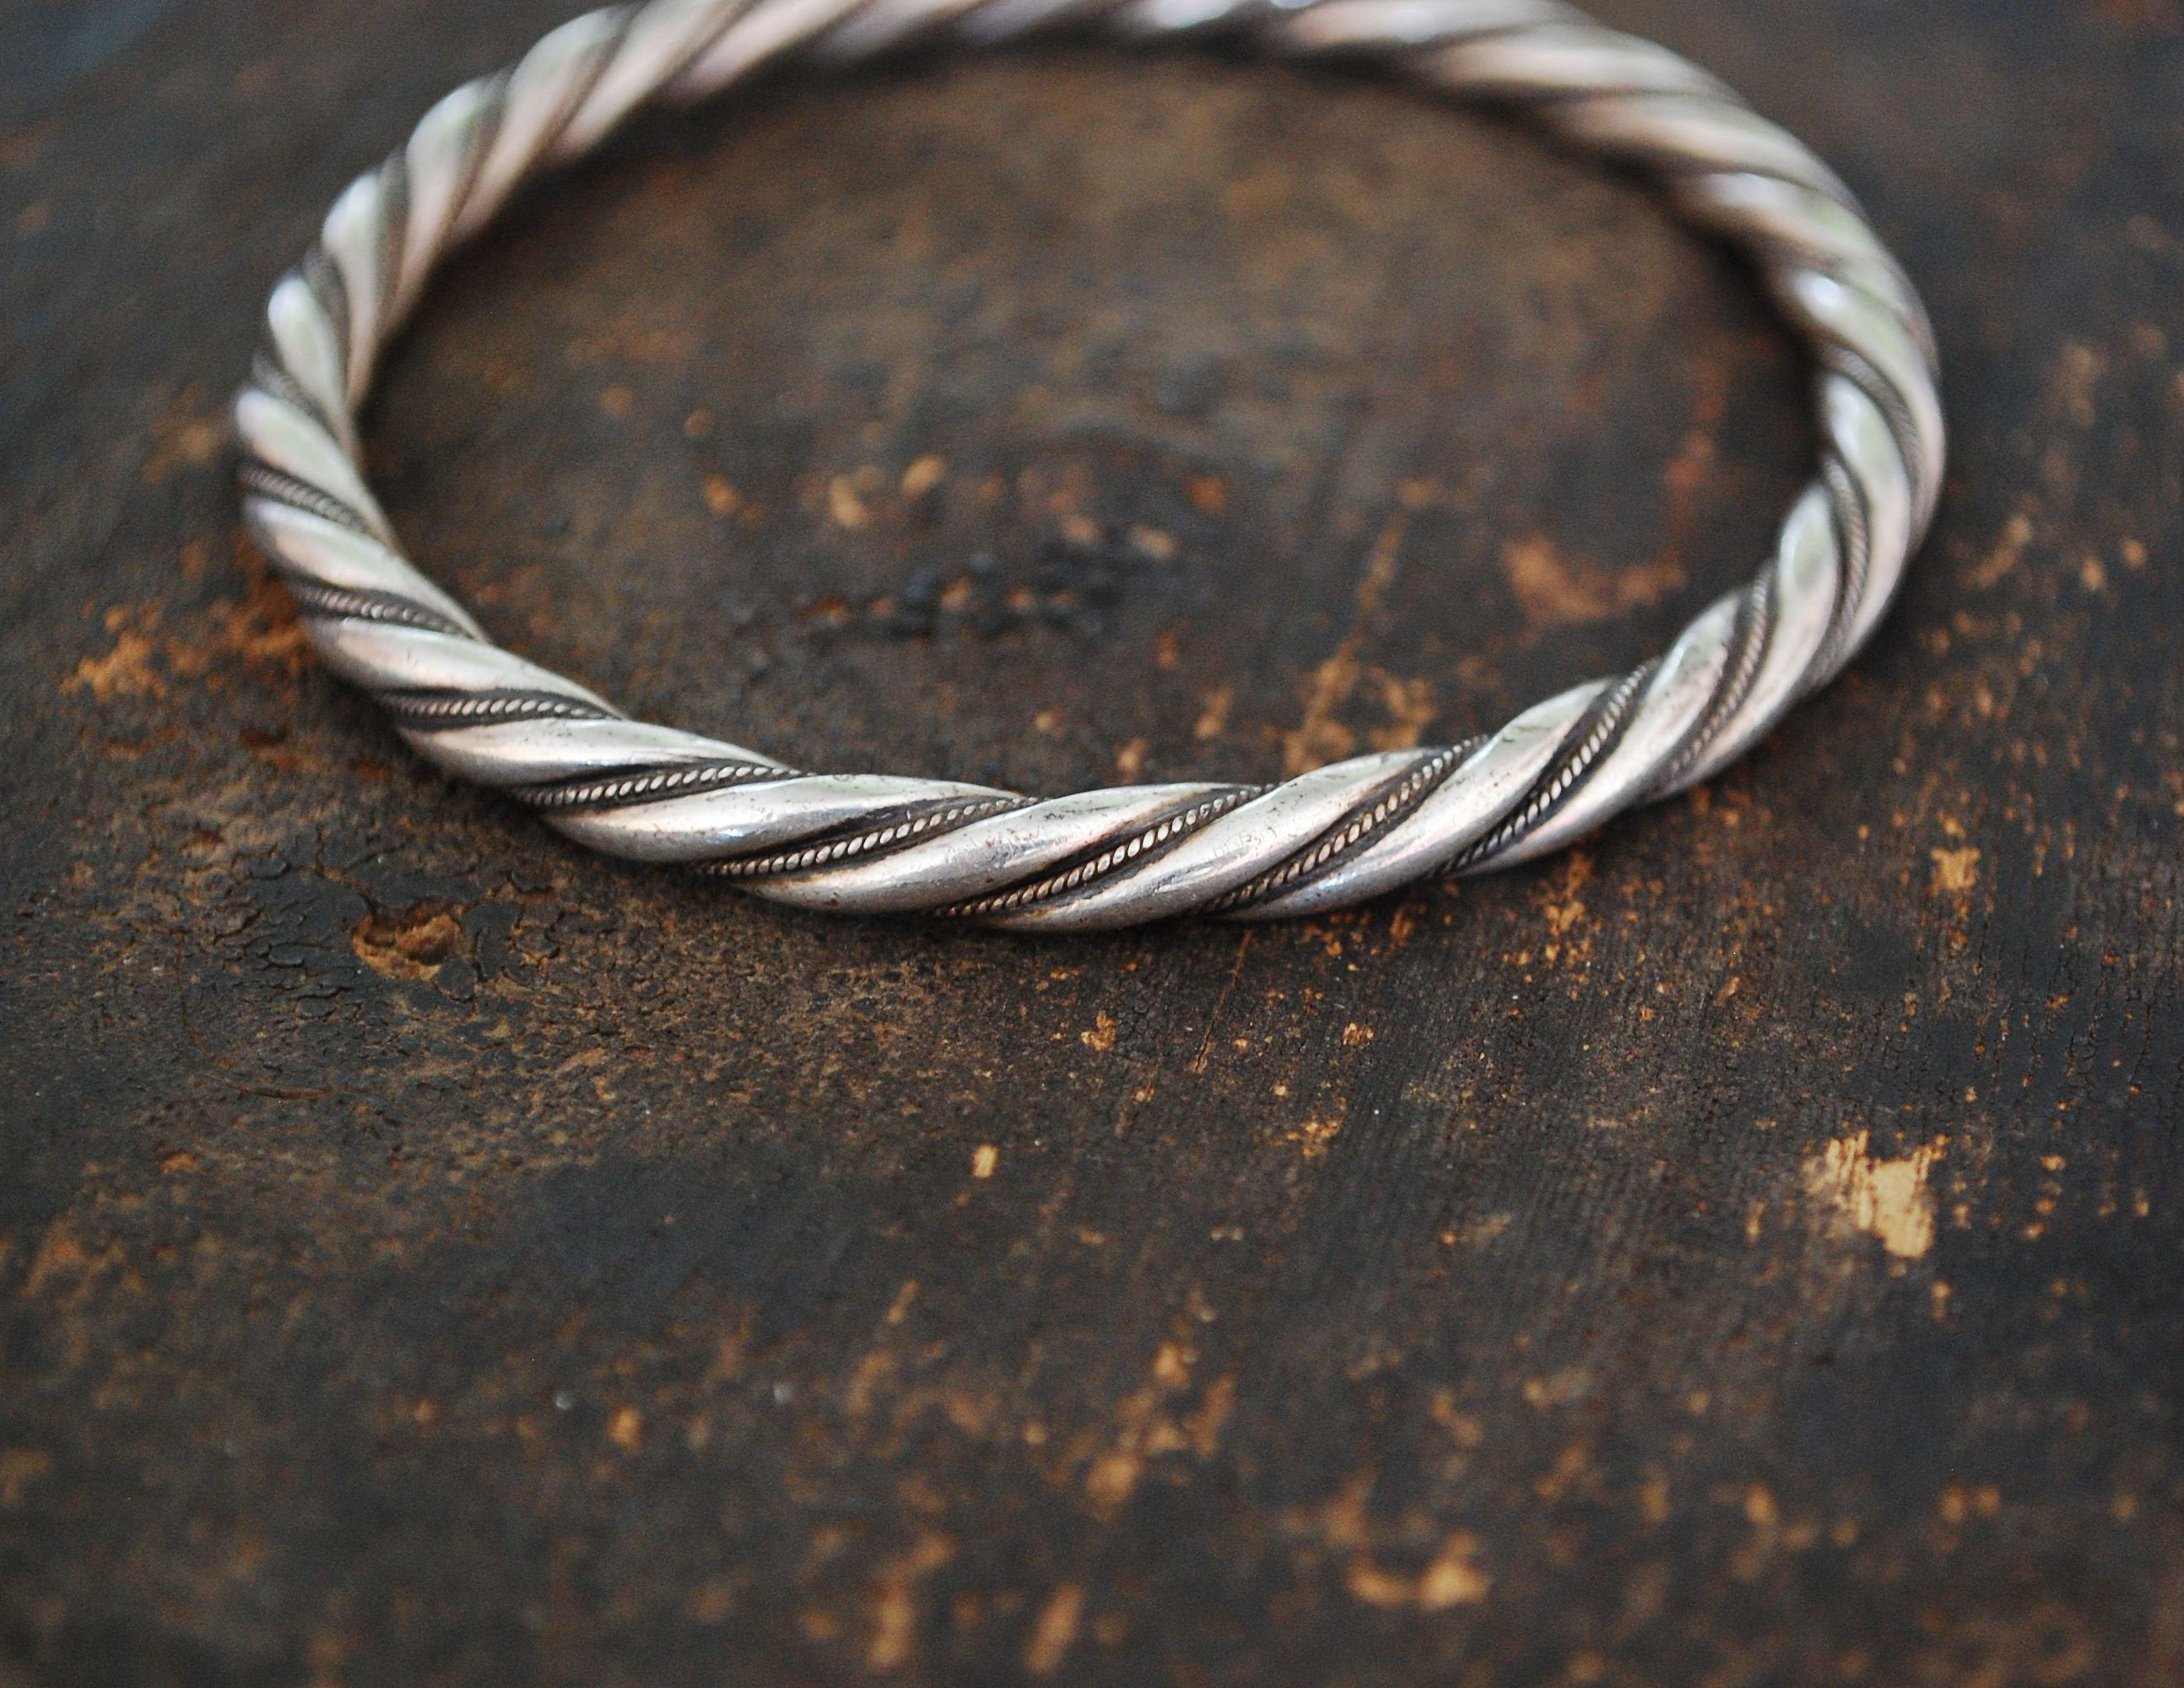 Twisted Bangle Bracelet Sterling Silver - Native American Twisted Bangle Bracelet - Twisted Sterling Silver Bracelet - Ethnic Jewelry